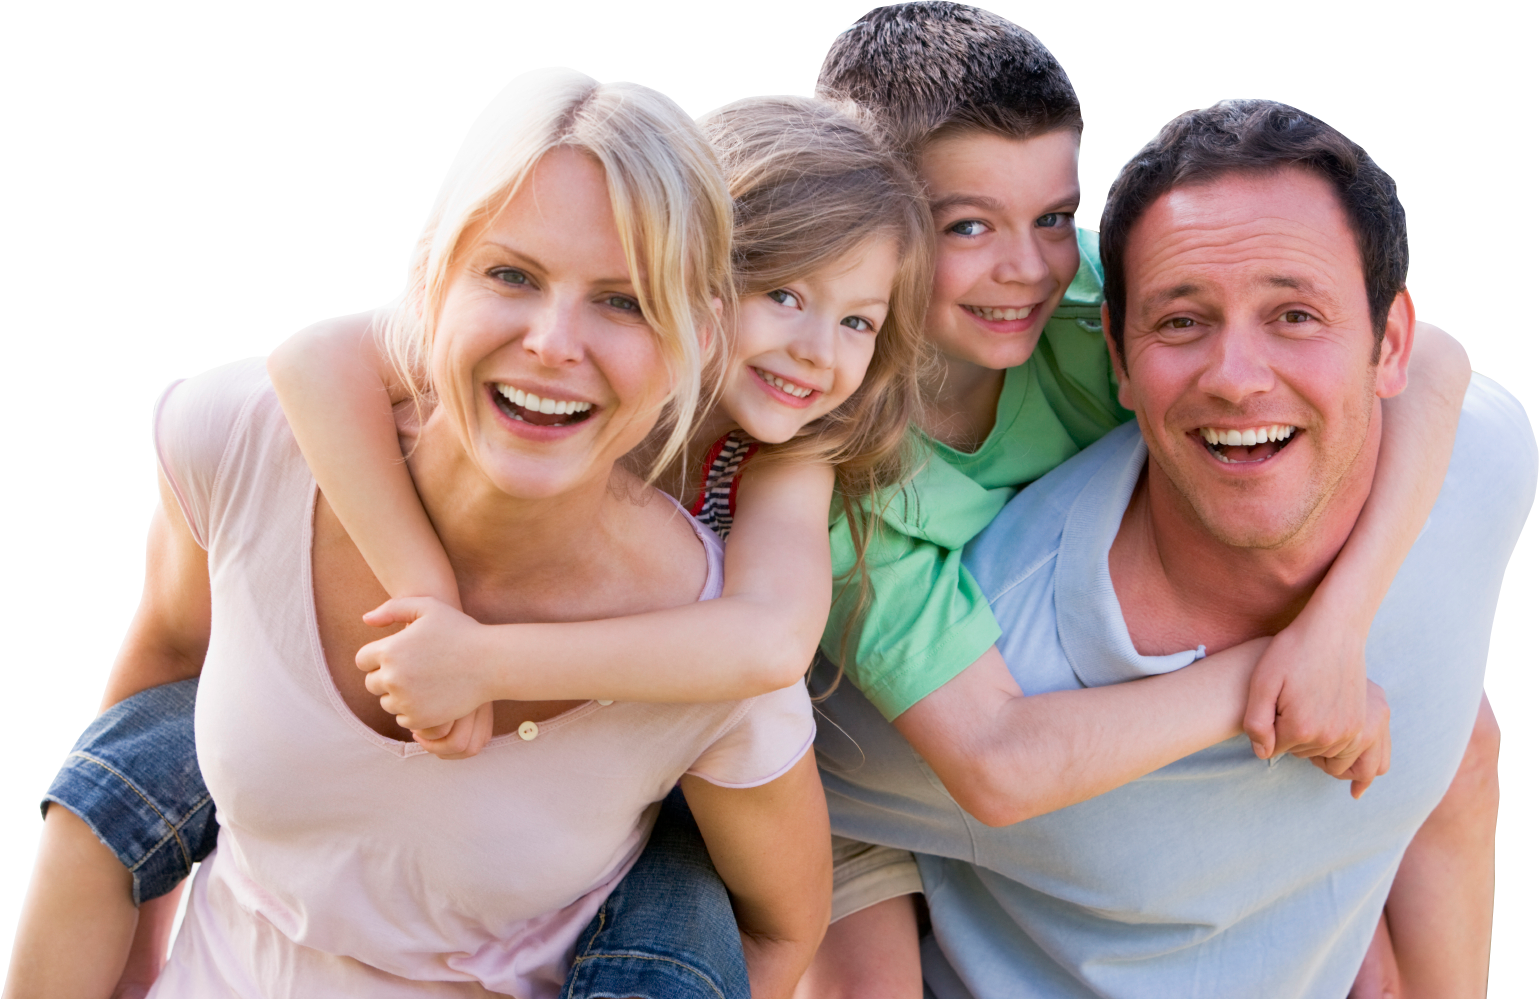 Download Family Png Image Family Png Full Size Png Image Pngkit Try to search more transparent images related to family png |. download family png image family png